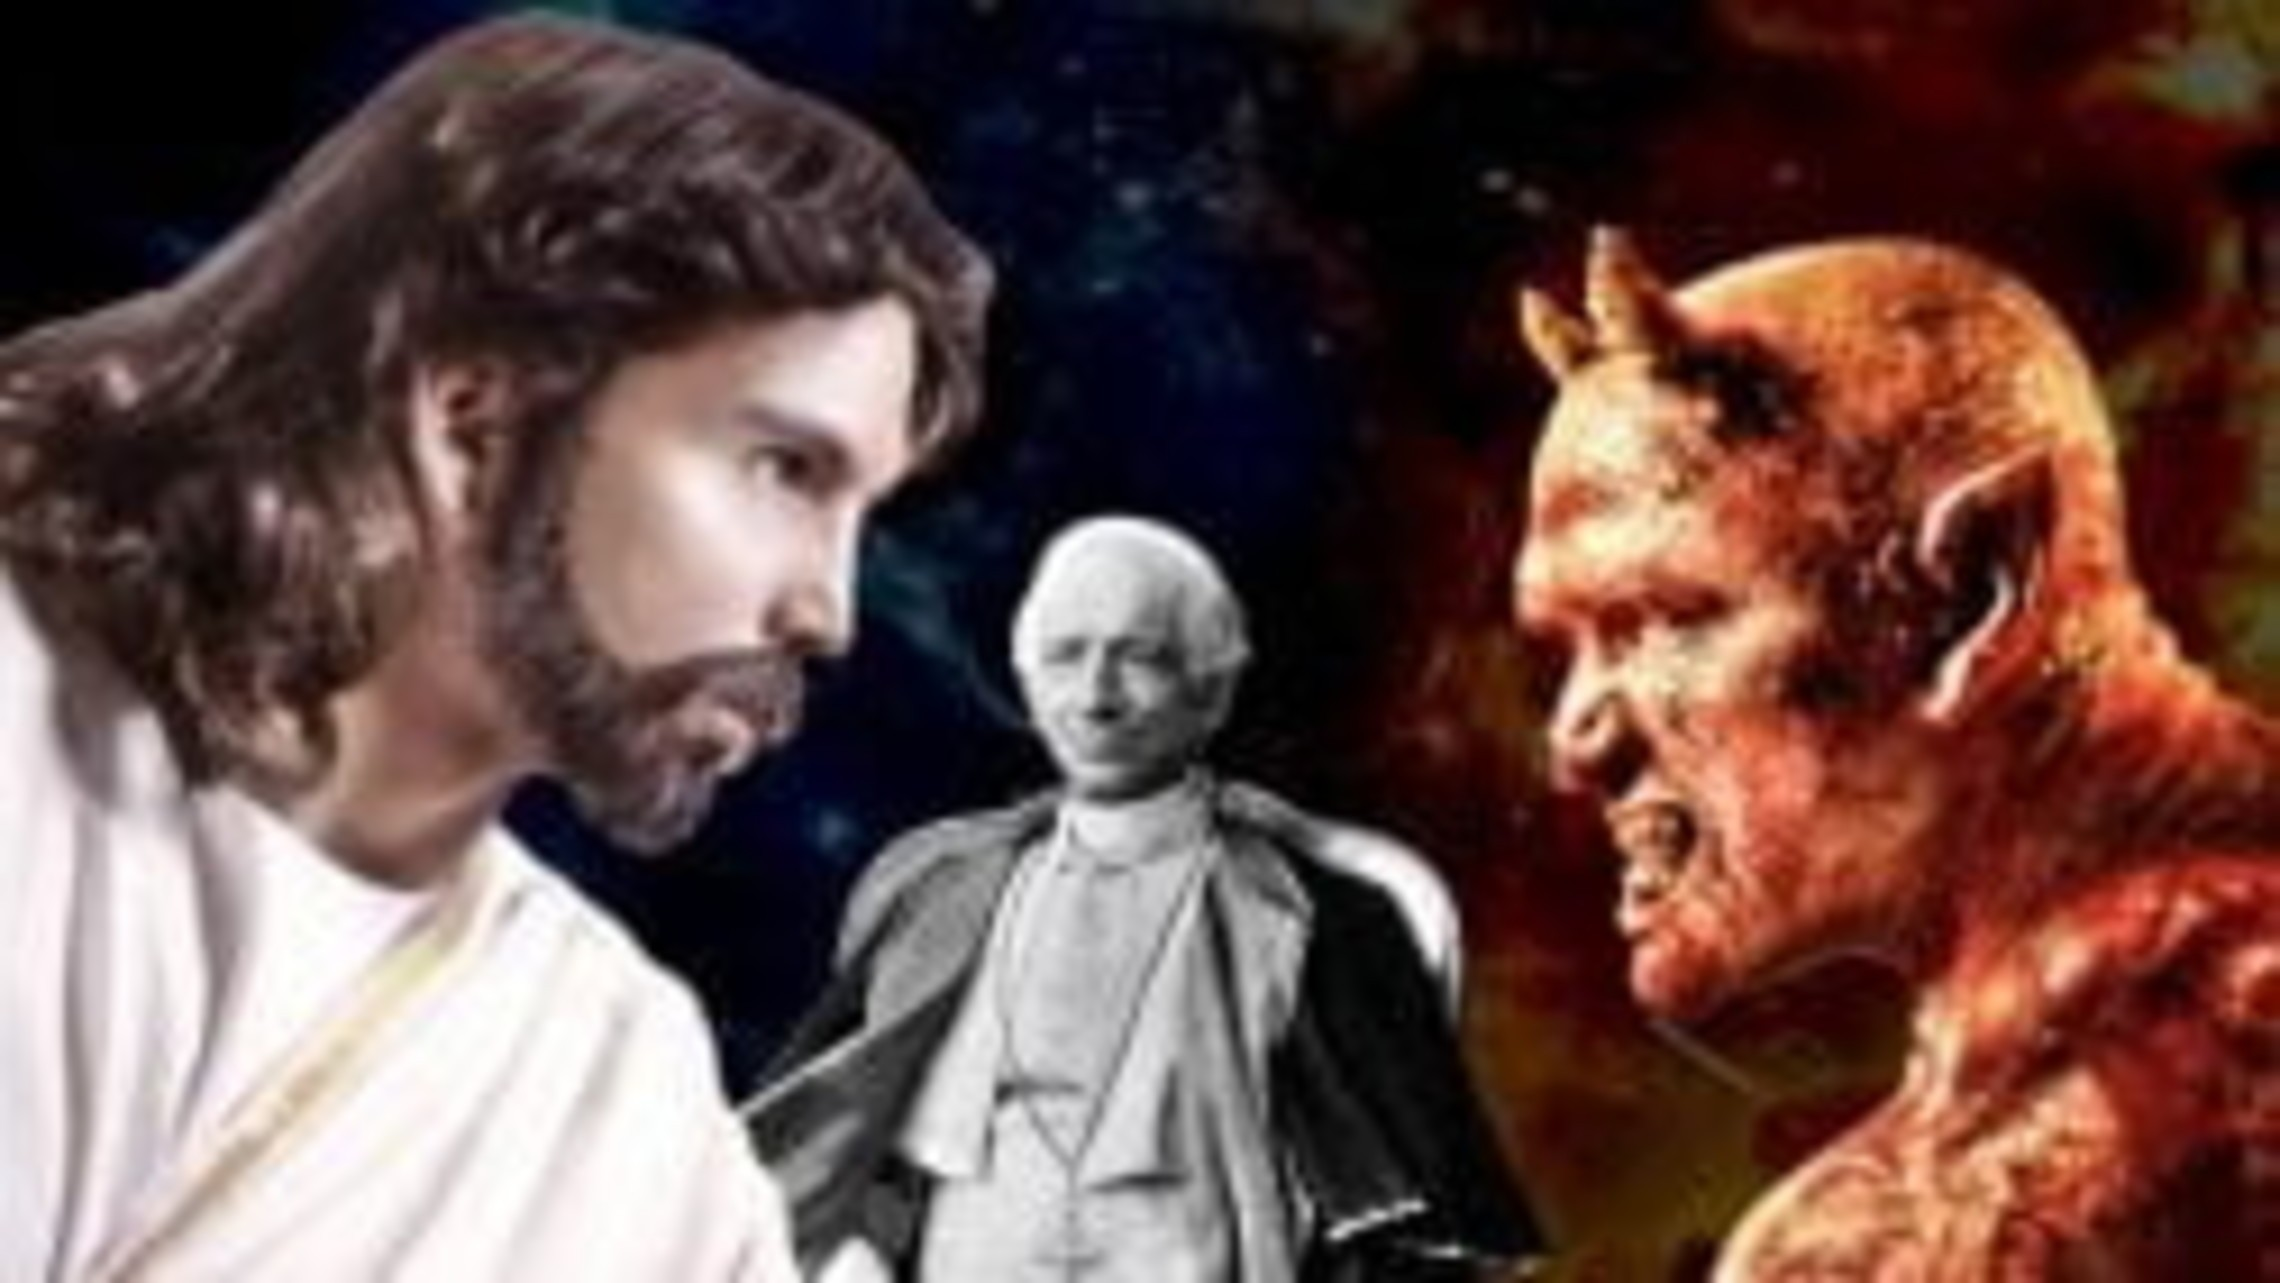 """Satan Debates God: """"I need 50-60 more years!"""" Is this vision of Pope Leo XIII in 1886 real?"""